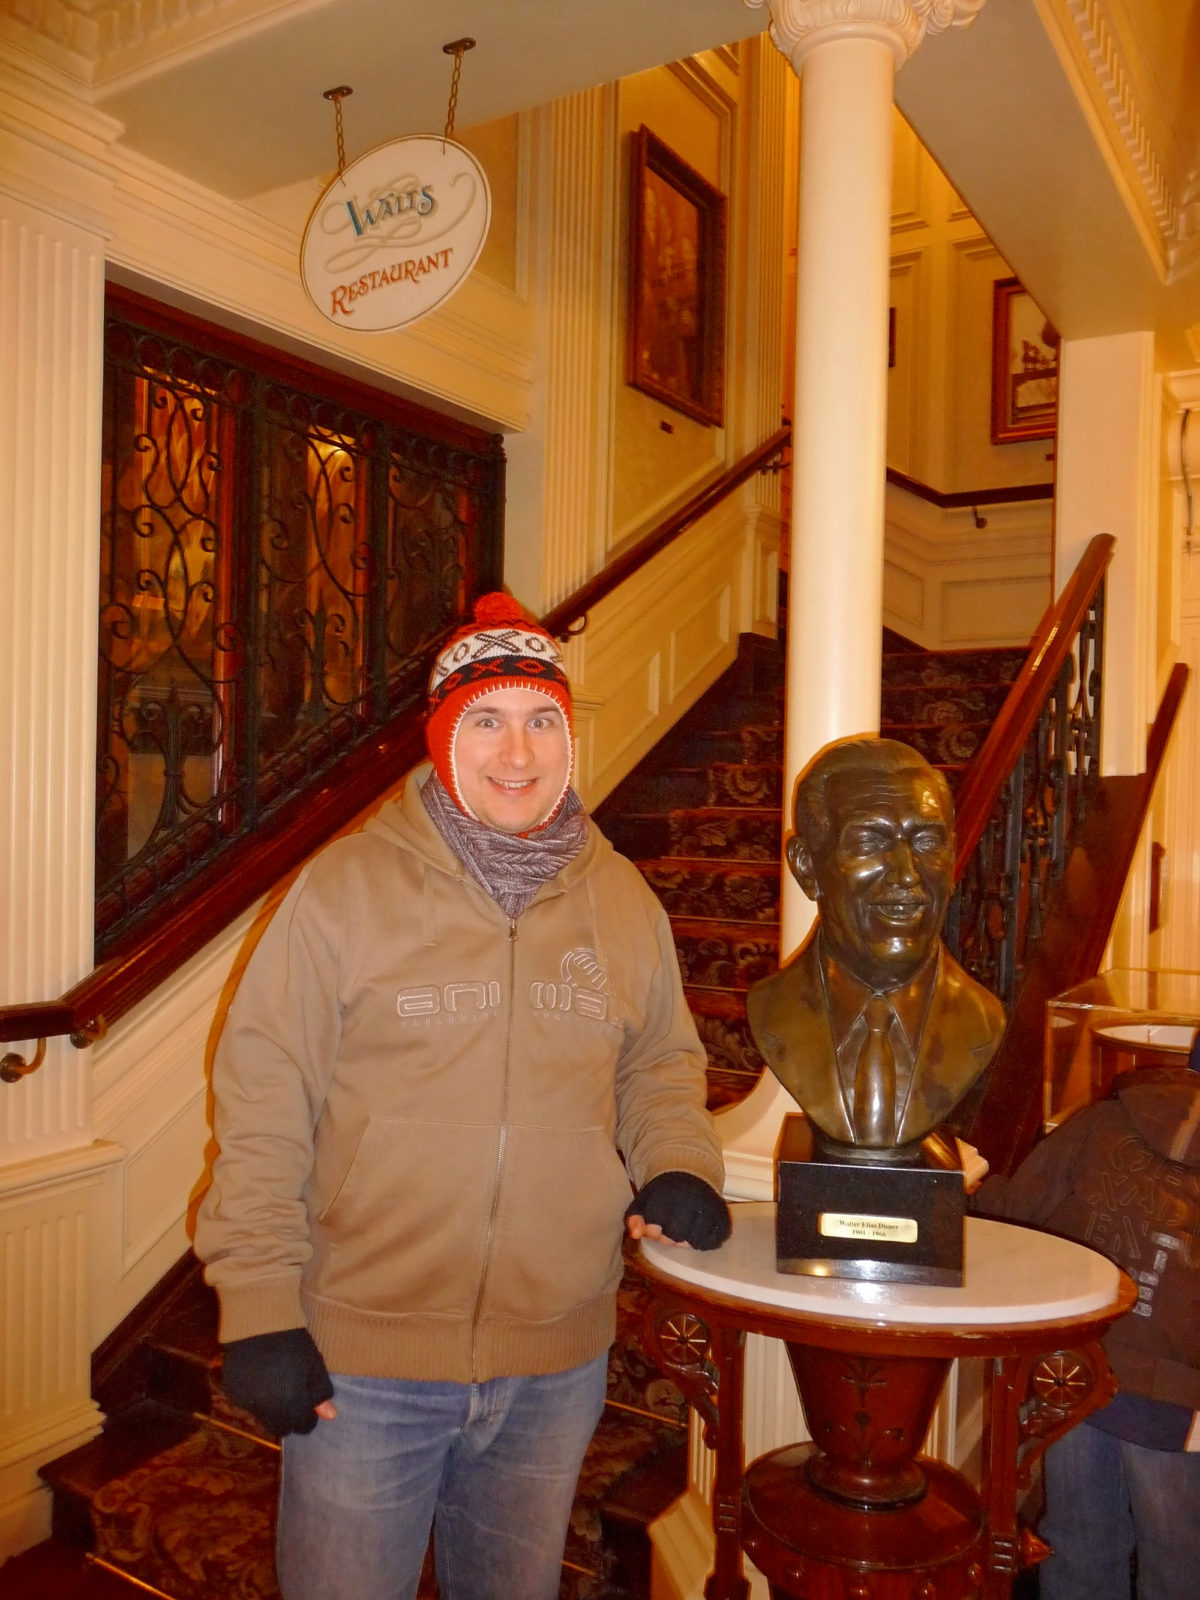 Image shows the bust of walt's head inside Walt's Restaurant in disneyland paris. A man is stood next to it, and he is dressed in warm winter clothes and a hat.